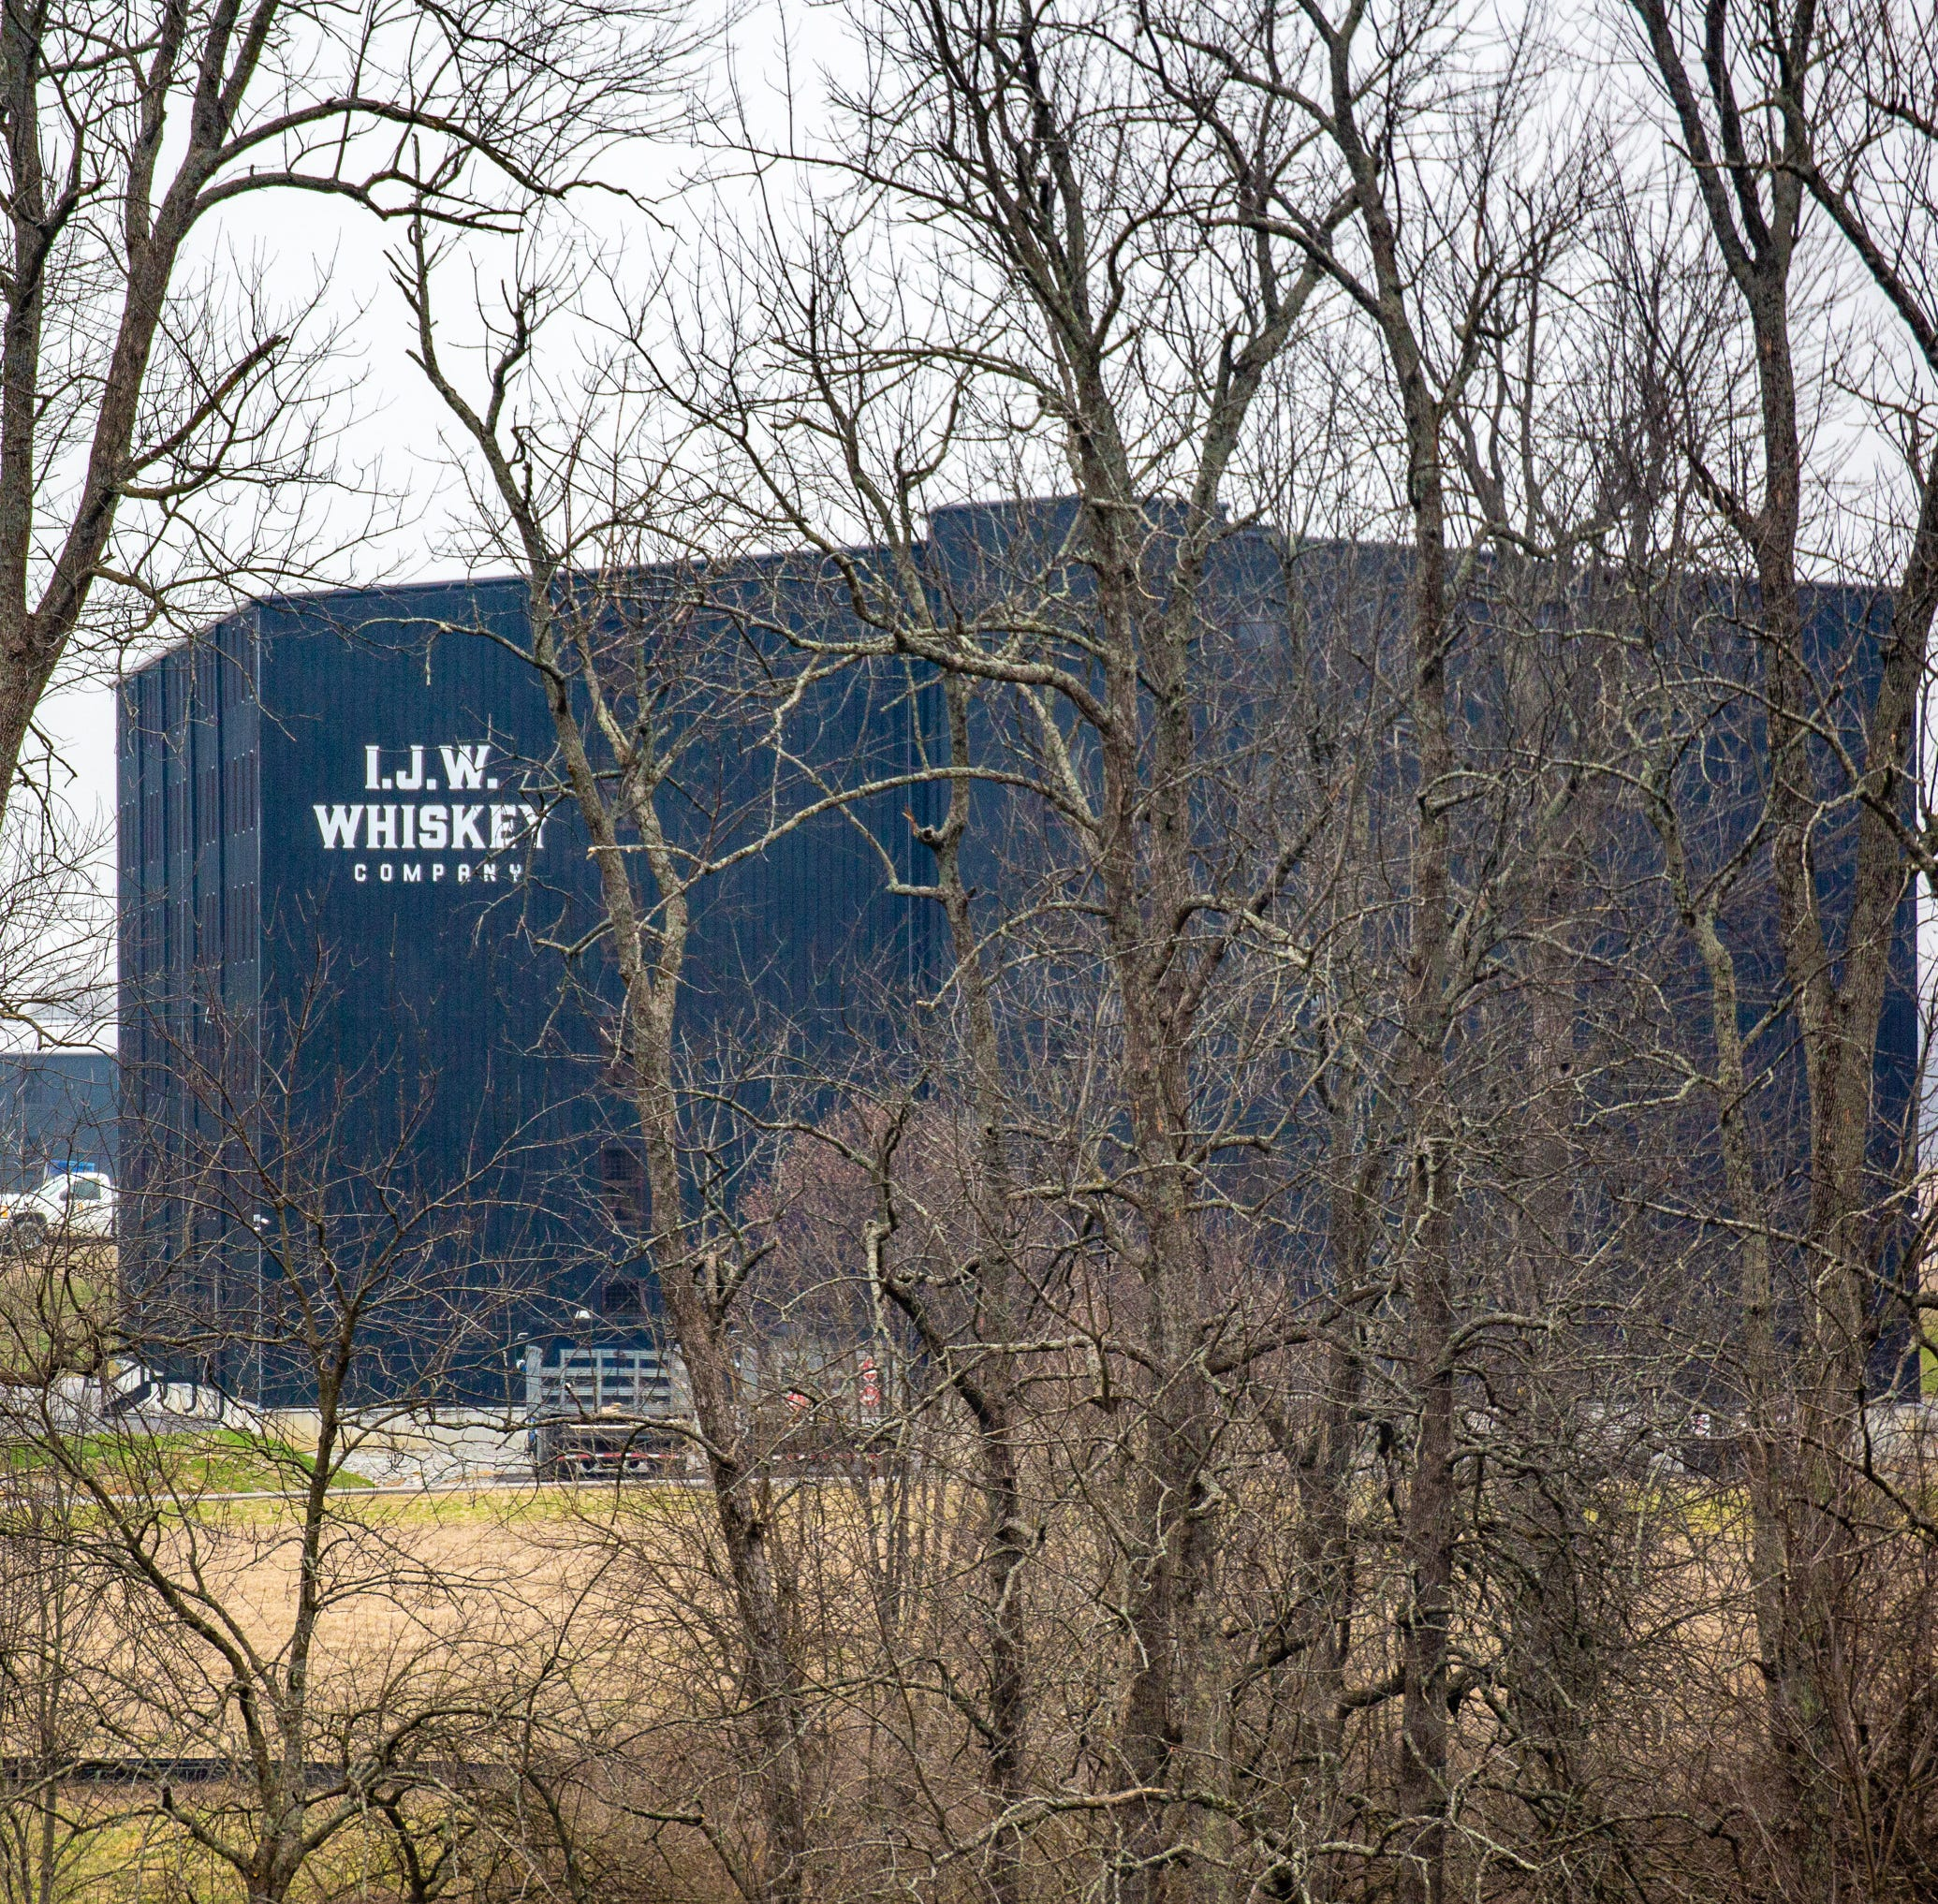 Mystery surrounds University of Michigan's possible whiskey investment